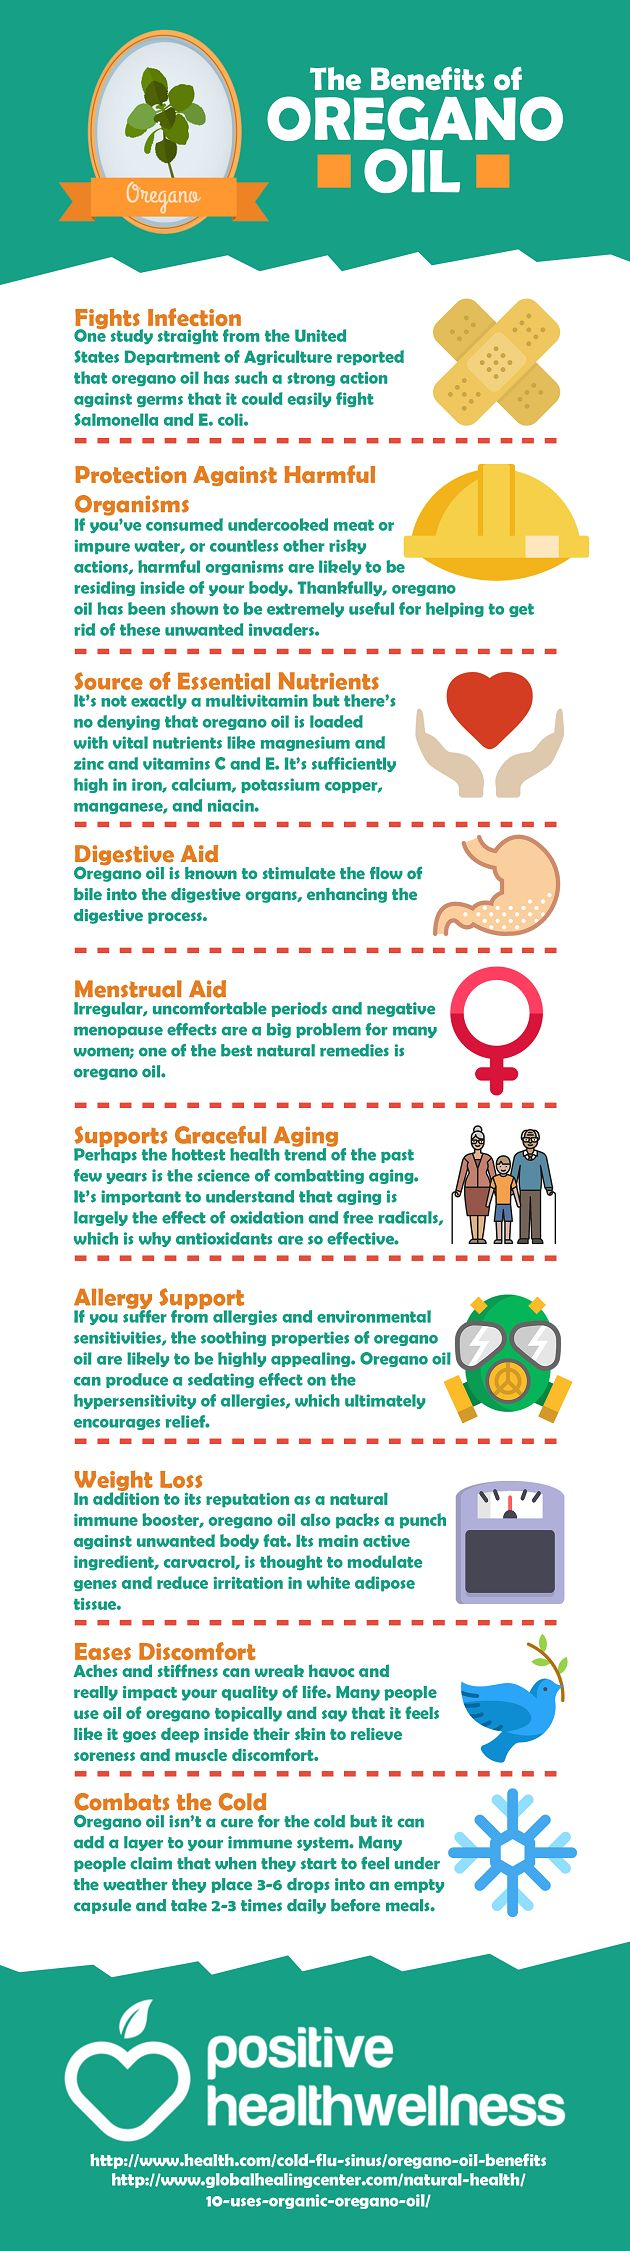 The Benefits of Oregano Oil - Infographic